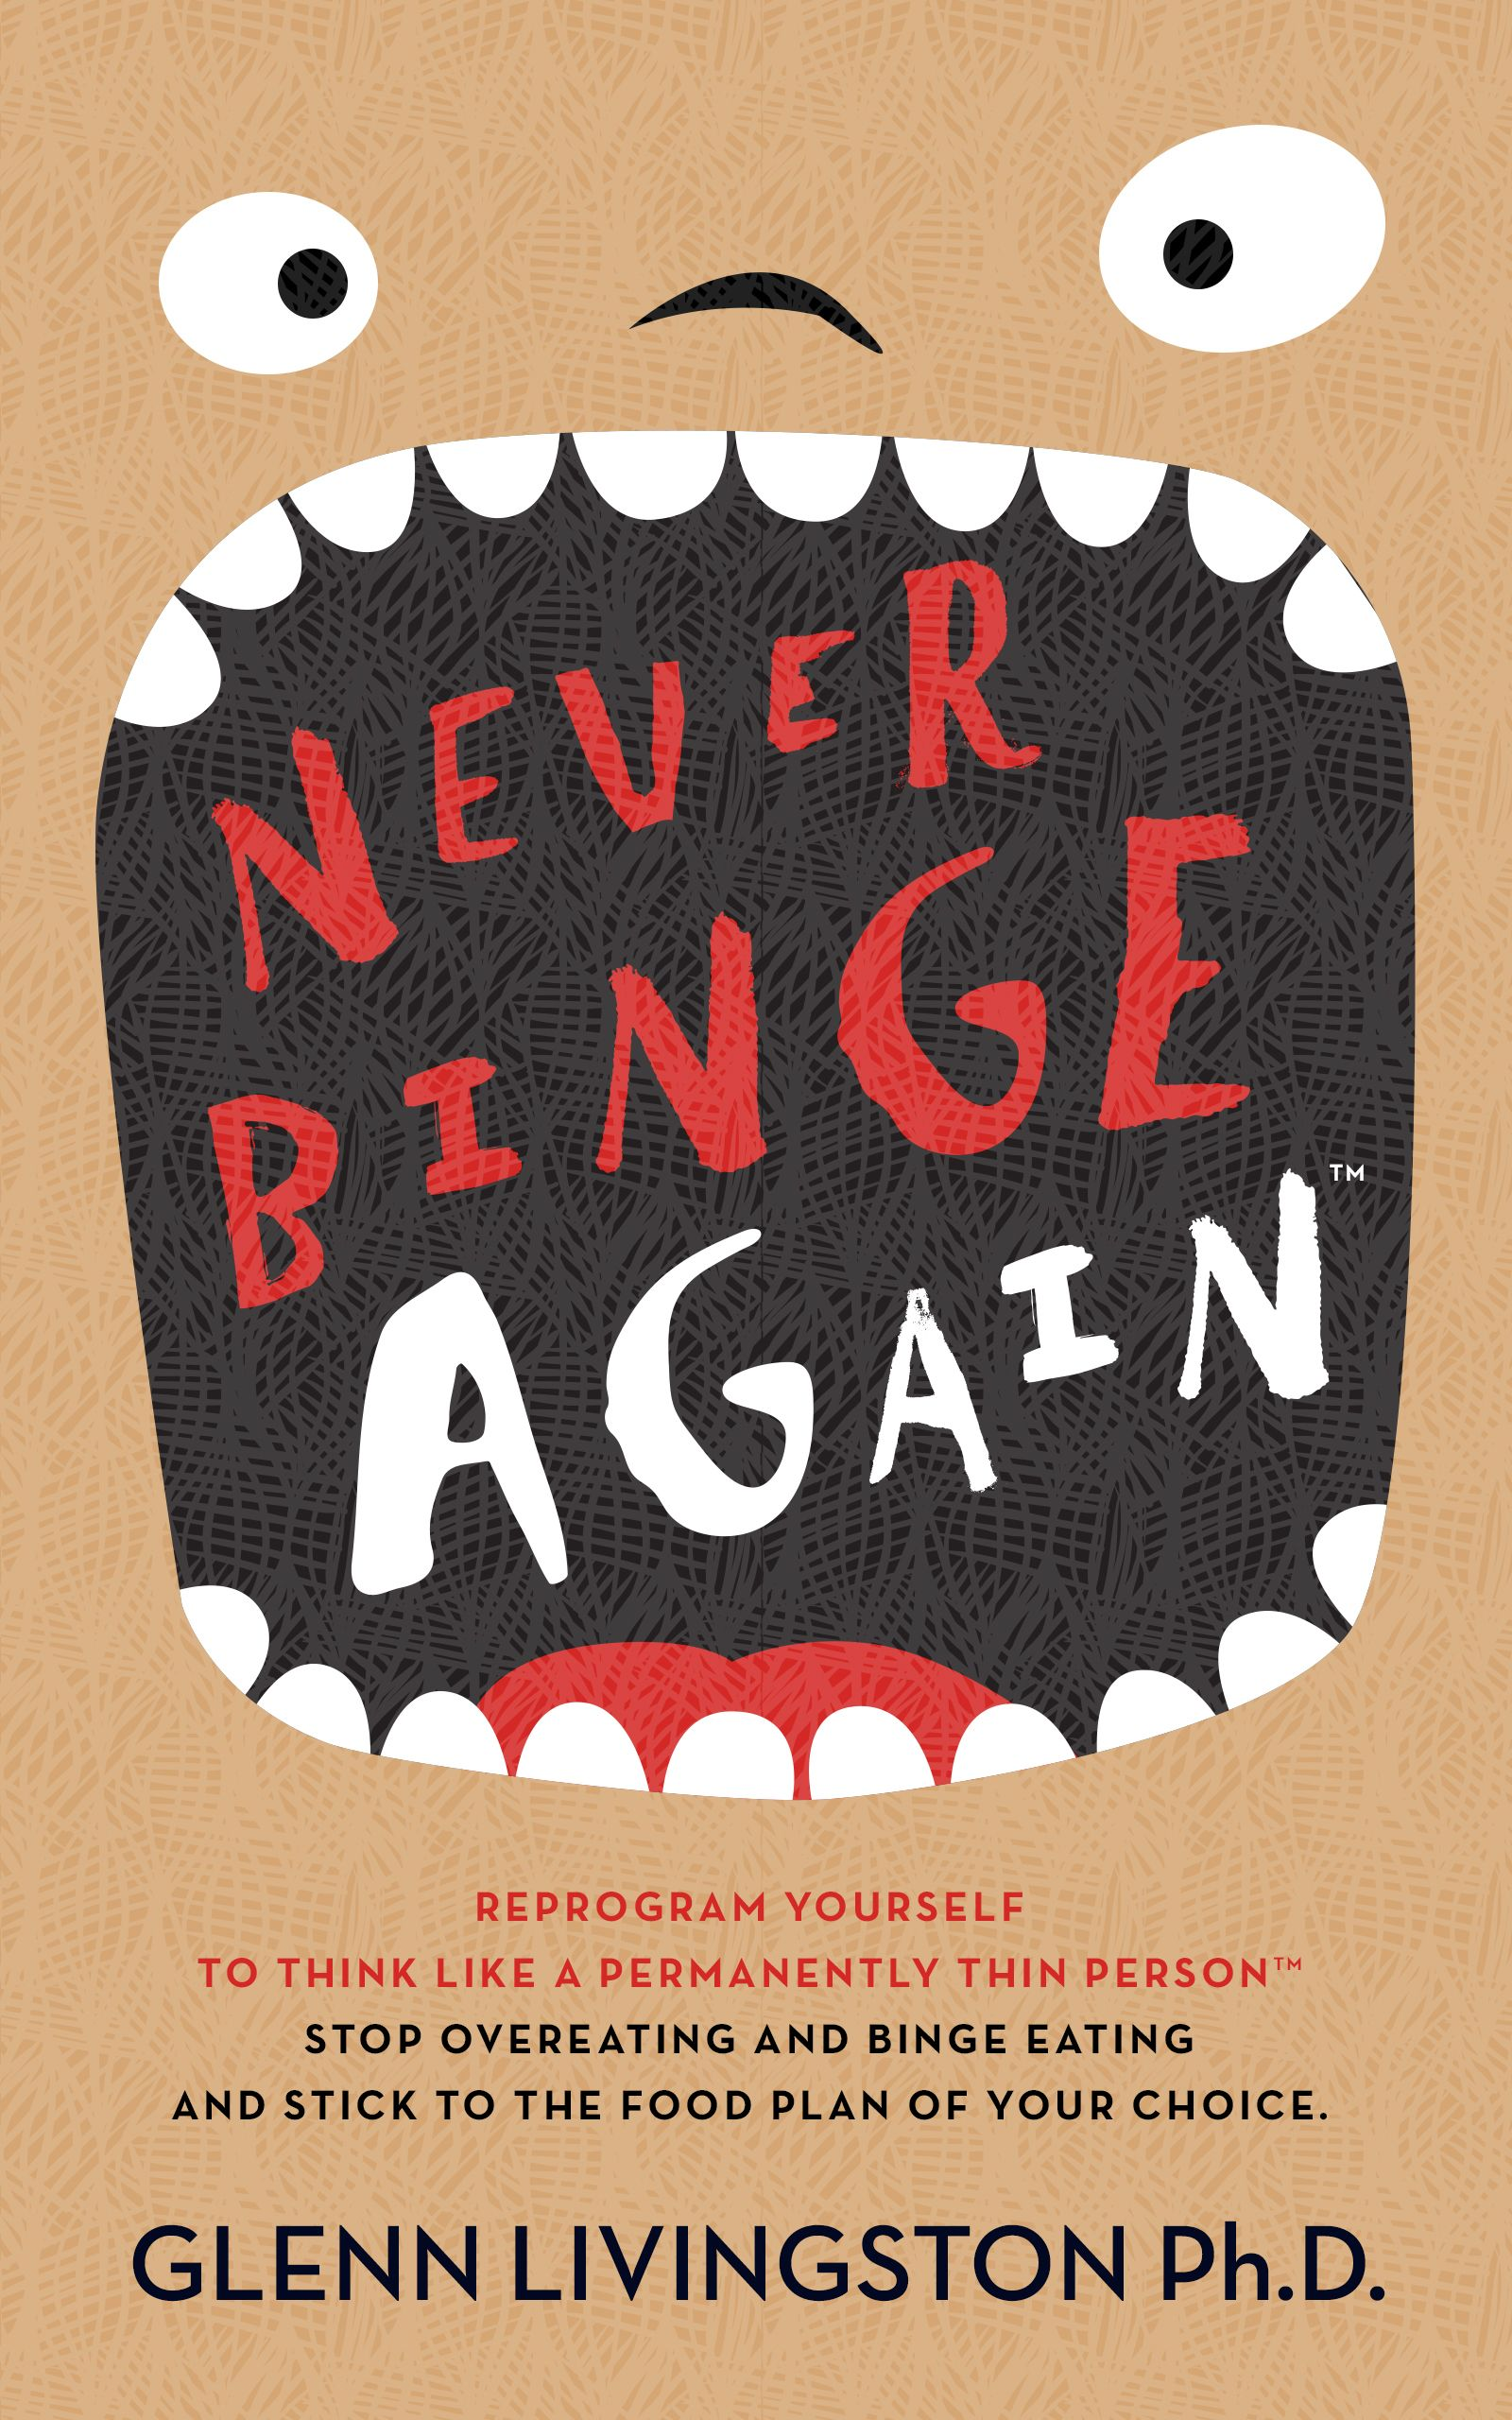 Book cover design for never binge again if you would like to book cover design for never binge again if you would like to commission us for solutioingenieria Gallery